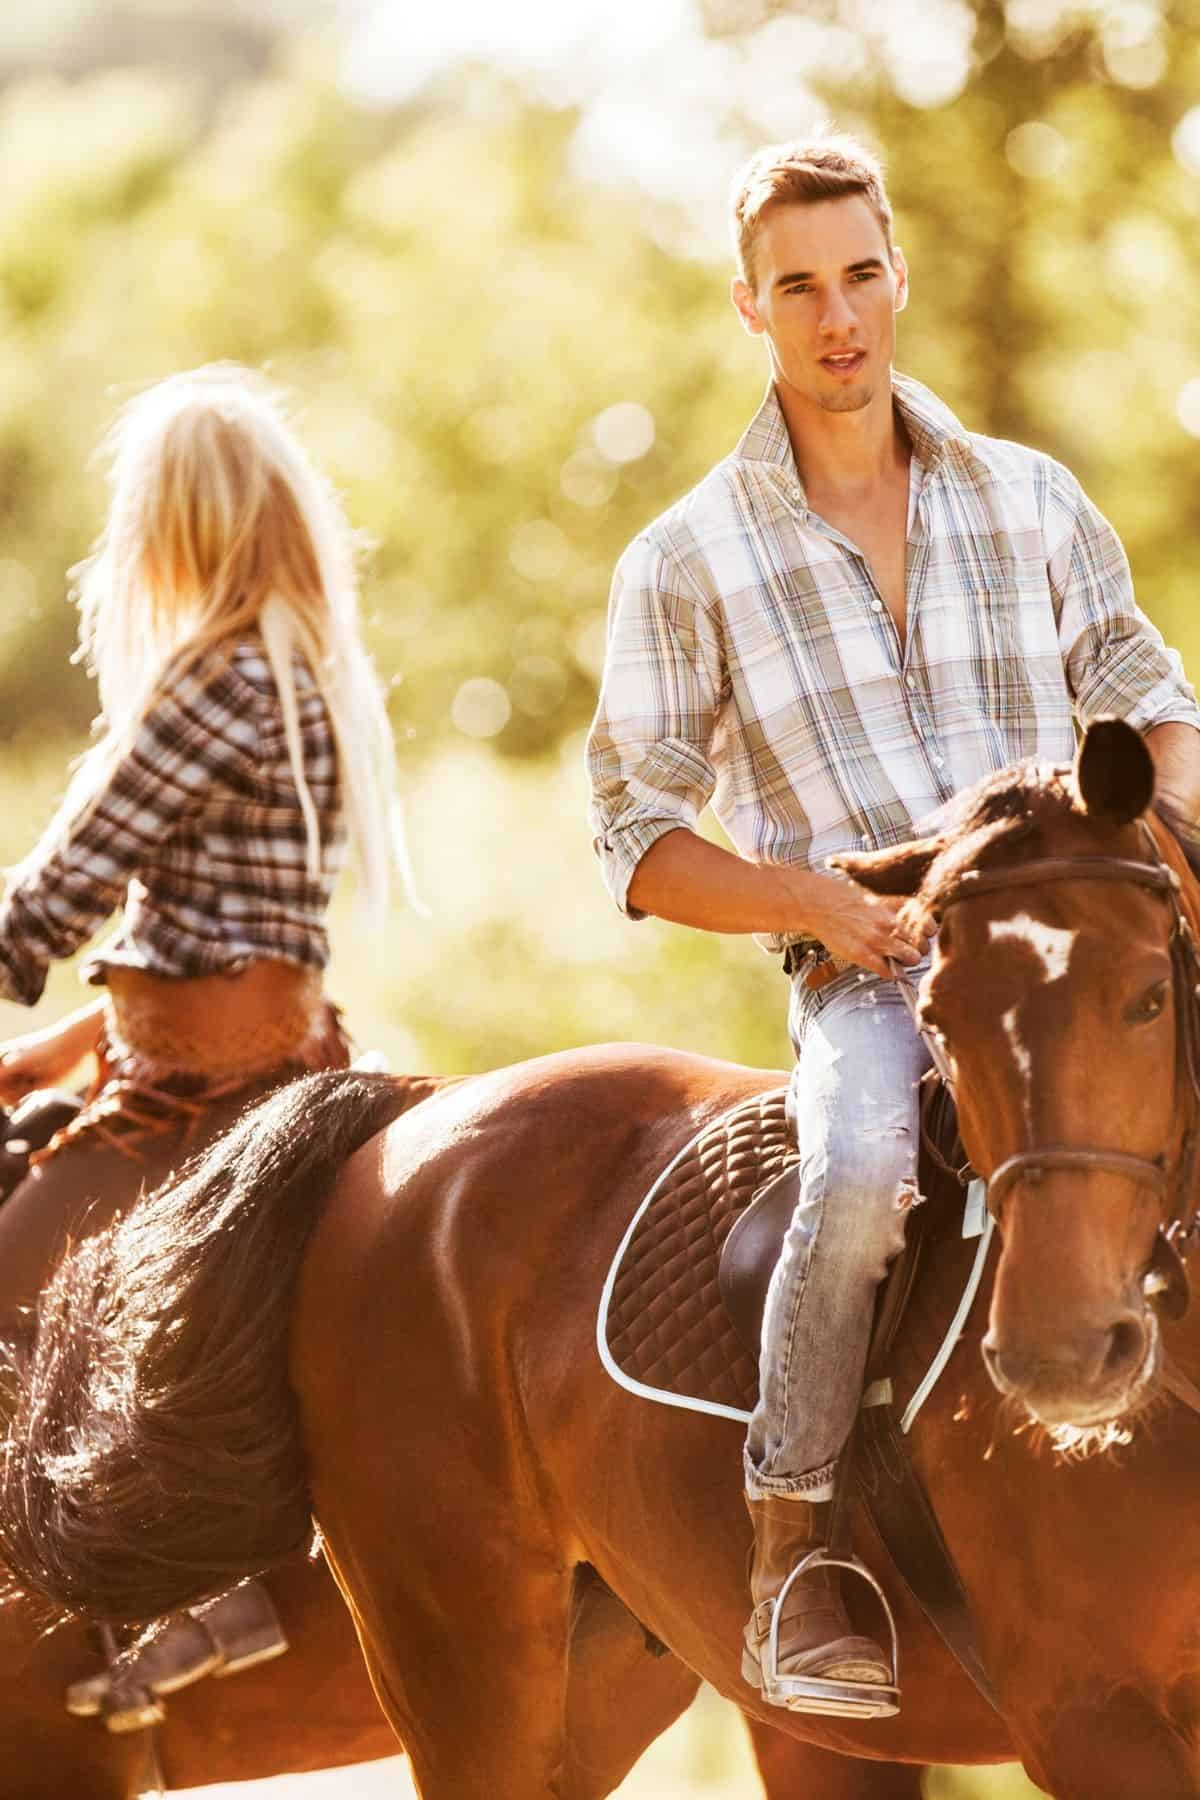 Couple on brown horses with glowing sunlight background